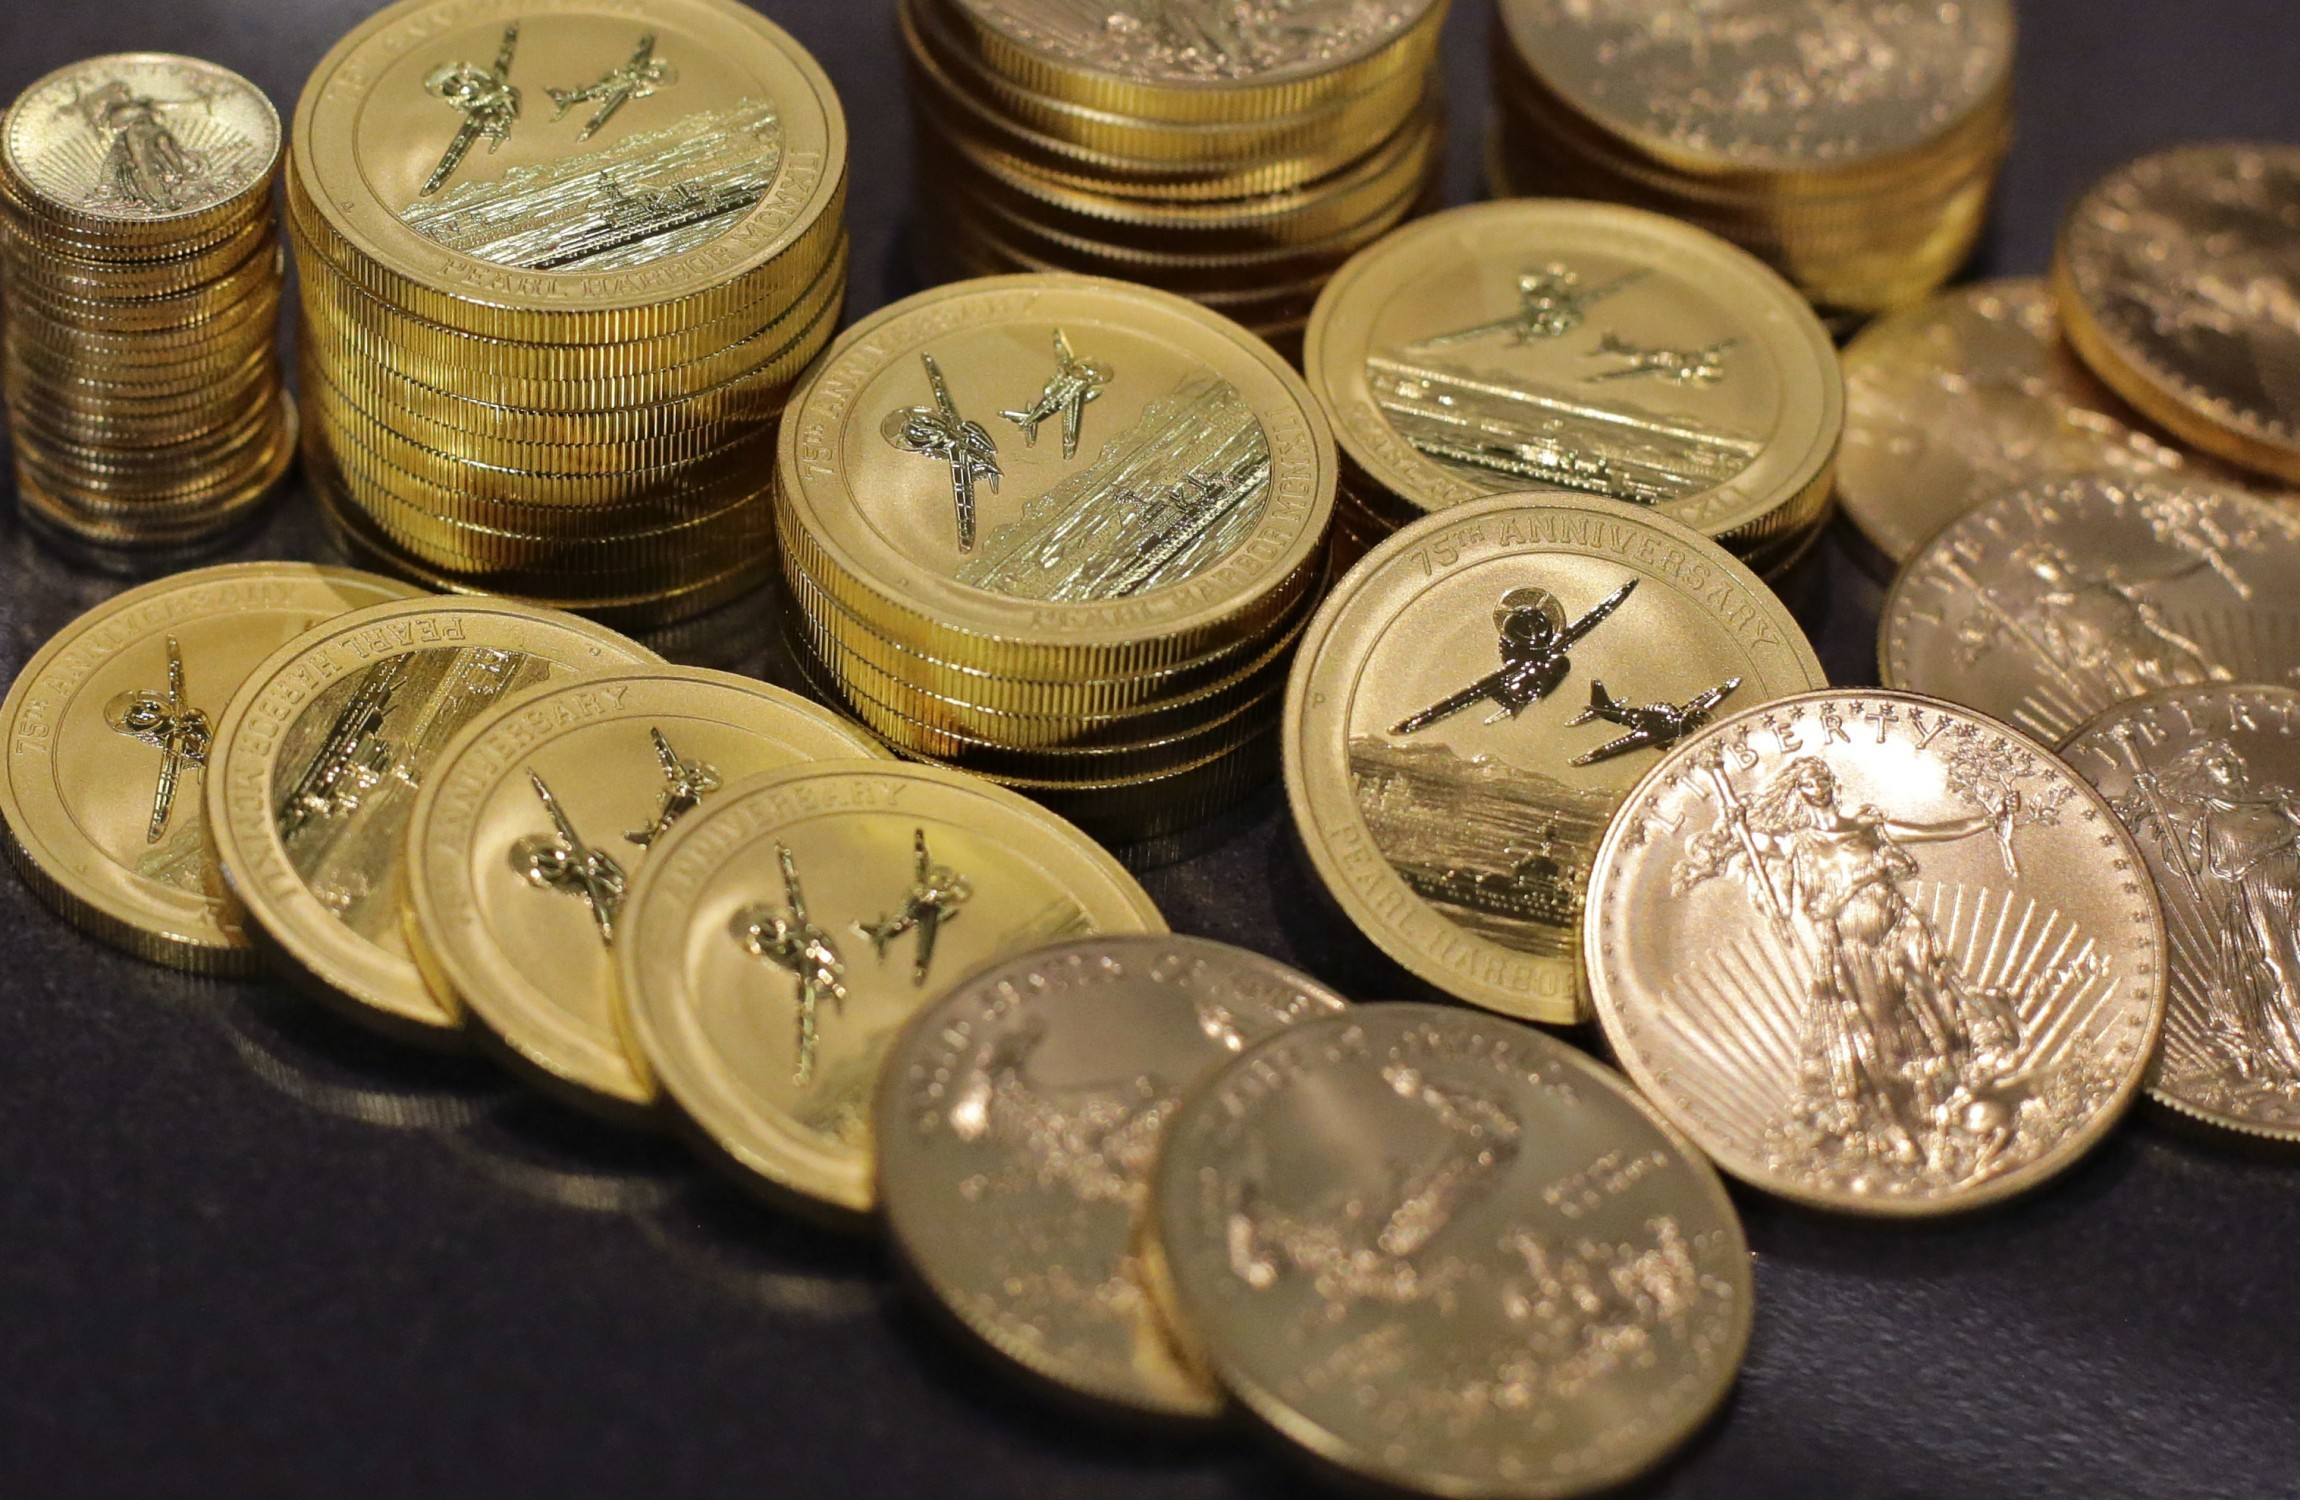 Man Finds 3 5 Million Worth Of Gold In House He Inherited